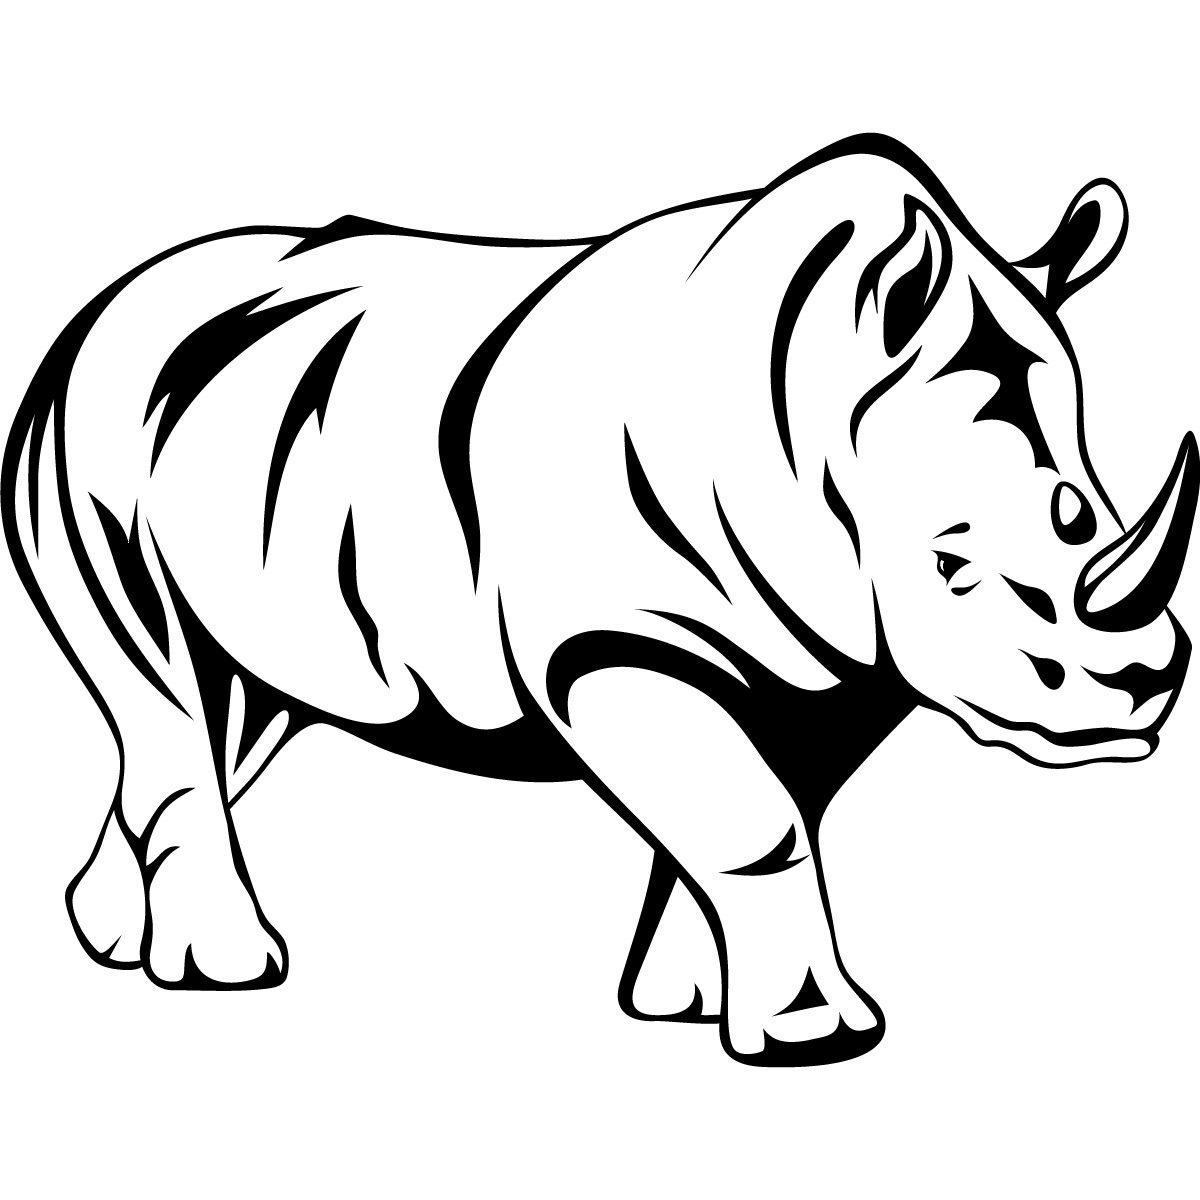 Free Images Of Wild Animals Only Outline, Download Free Clip Art - Free Printable Arty Animal Outlines